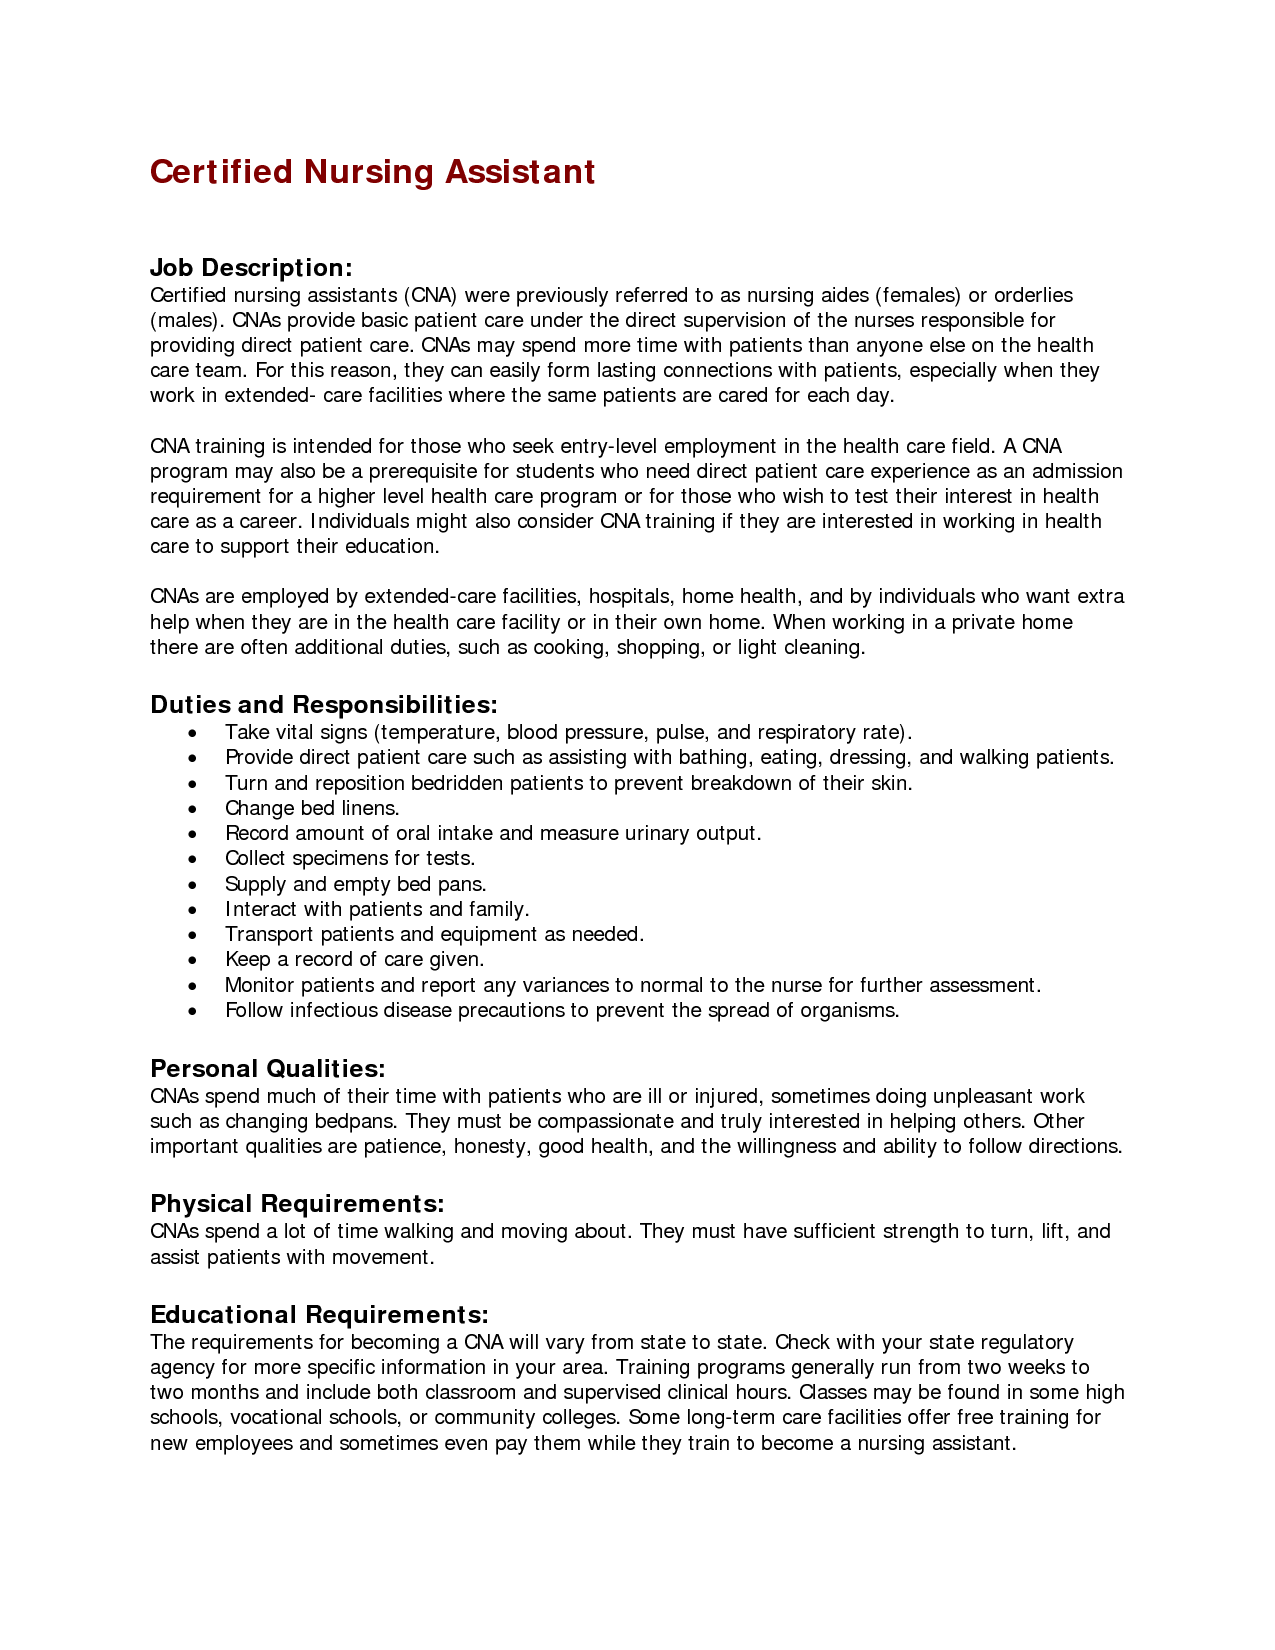 sample cna certified nursing assistant job description responsibilities nursing assistant resume job description cna duties and responsibilities